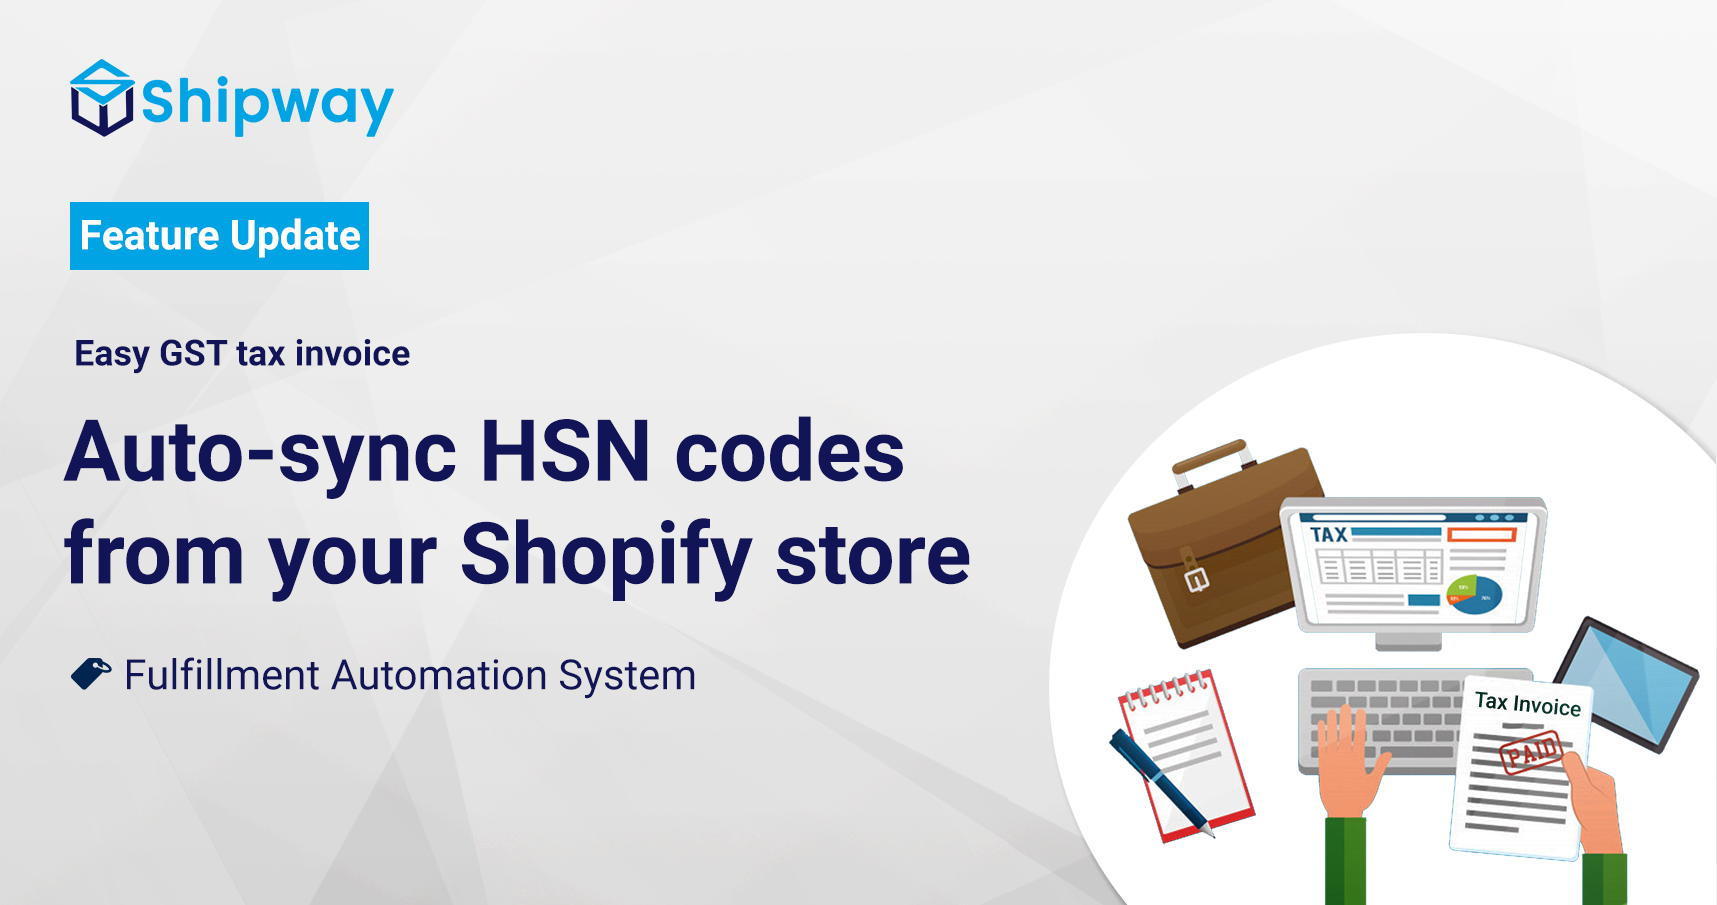 Auto-sync HSN codes from your Shopify store